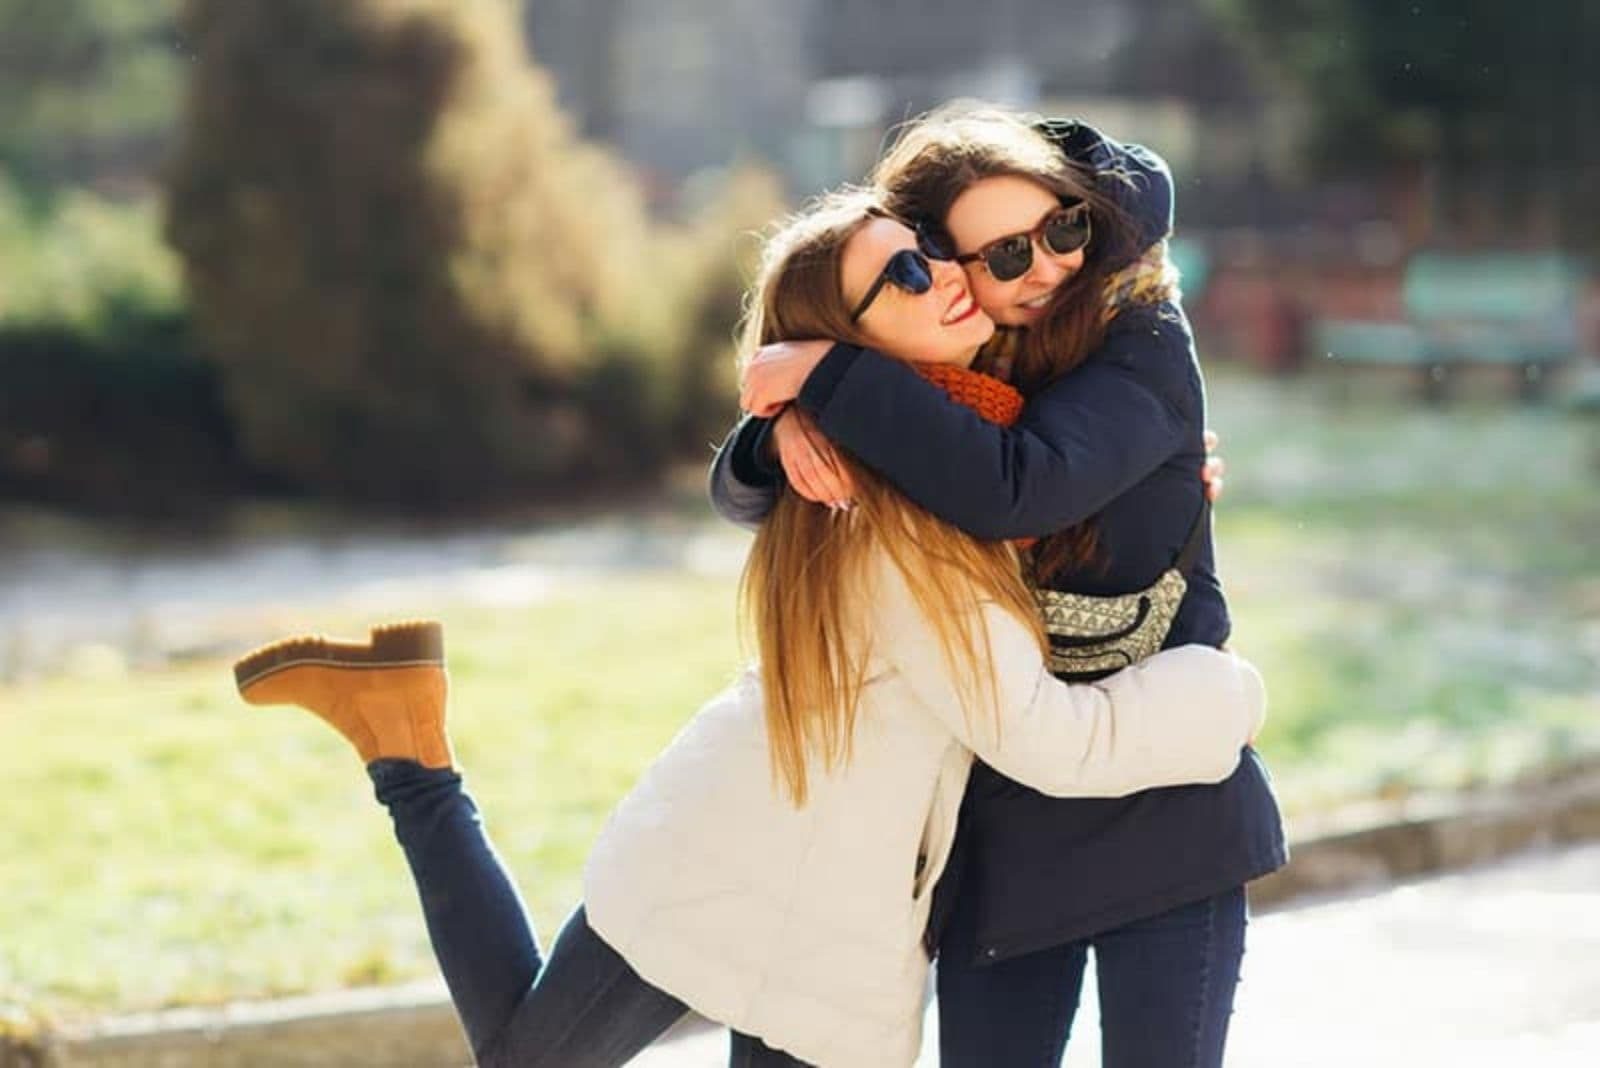 two friends with glasses and long jackets embracing